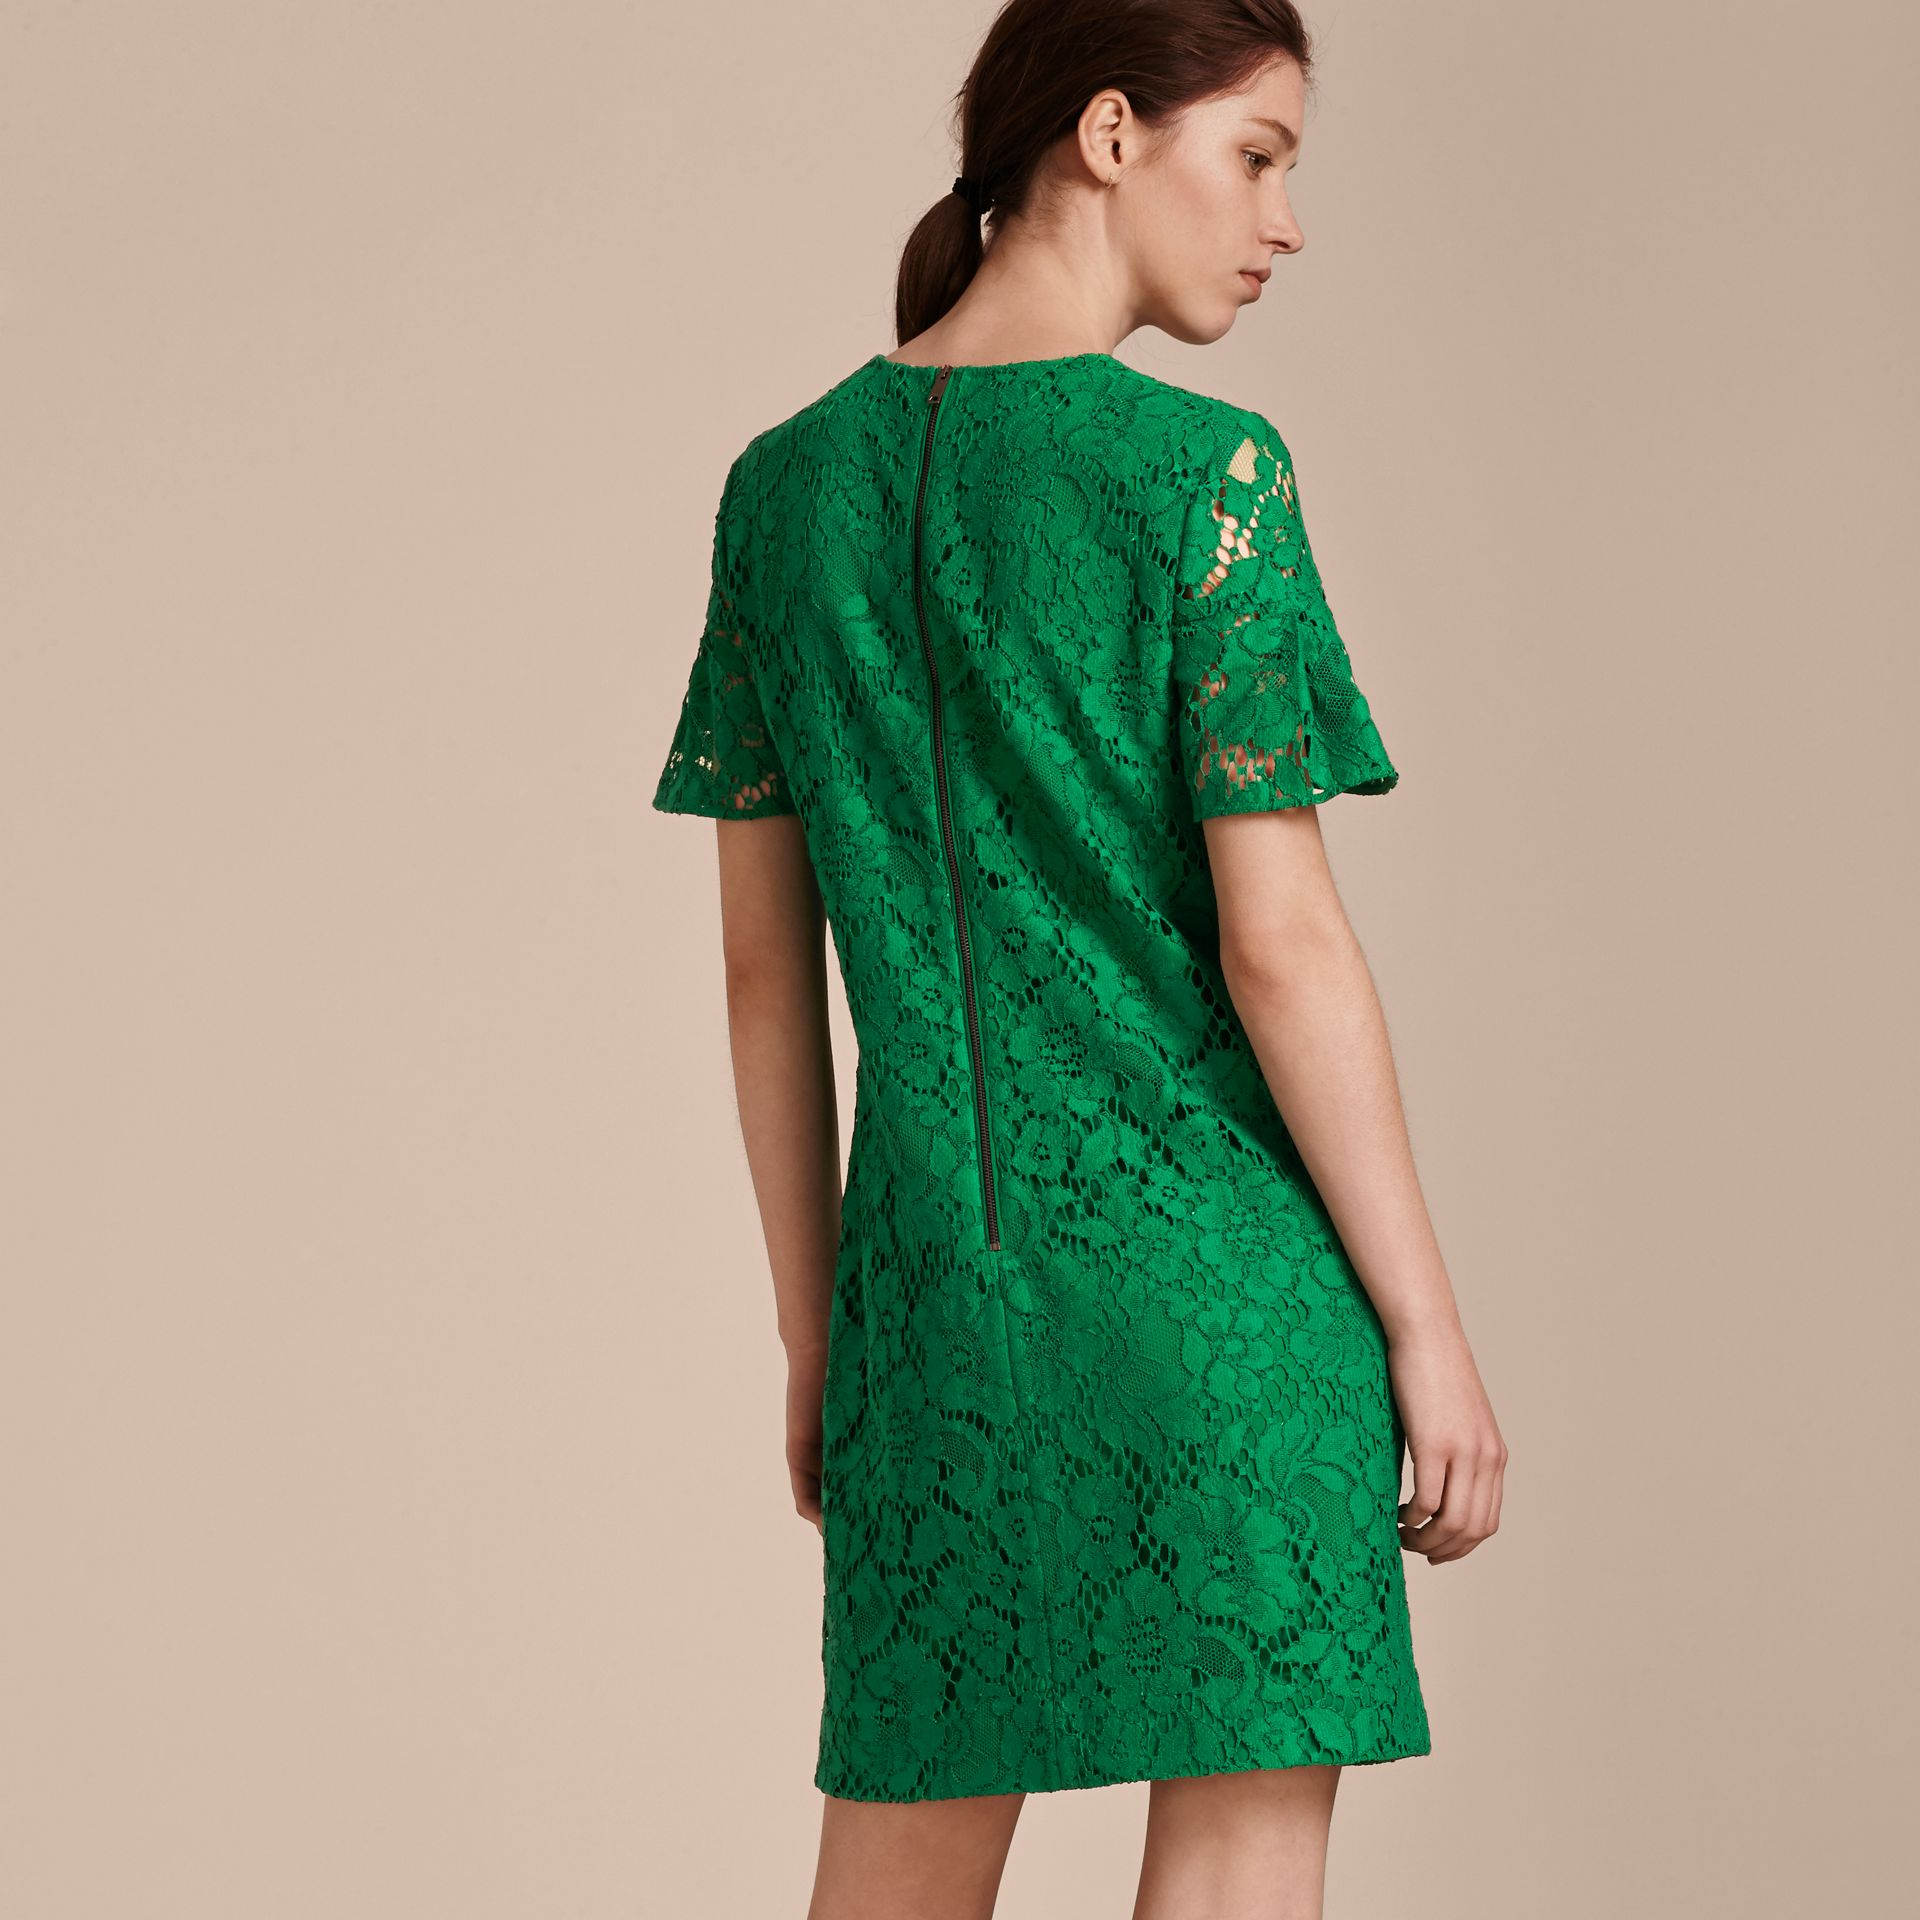 Macramé Lace Short Shift Dress with Ruffle Sleeves Kelly Green - gallery image 3